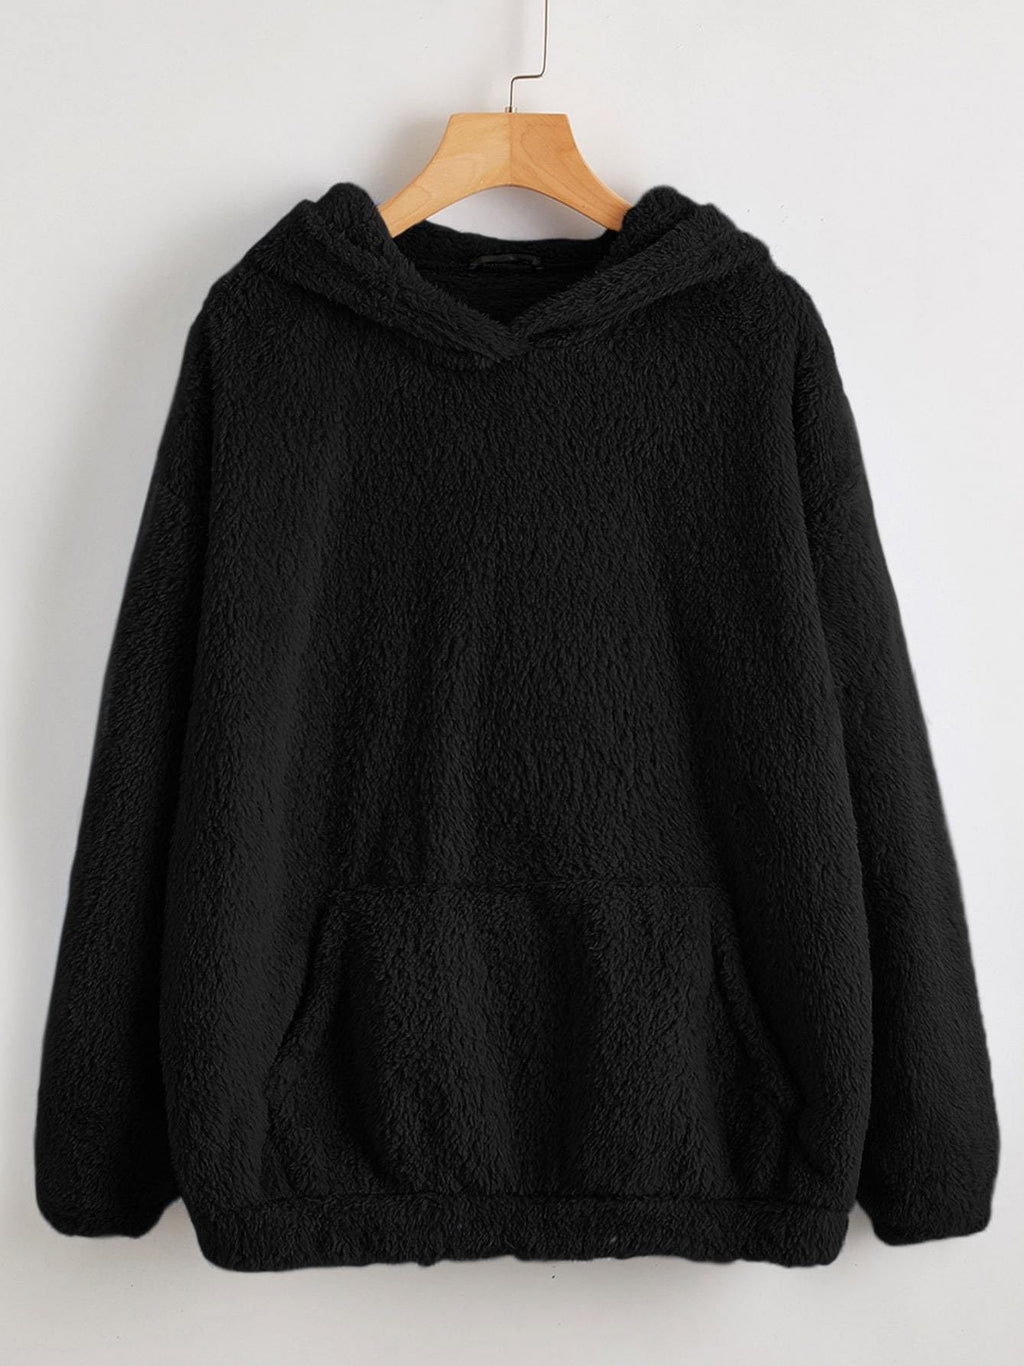 Drop Shoulder Kangaroo Pocket Teddy Hoodie - INS | Online Fashion Free Shipping Clothing, Dresses, Tops, Shoes